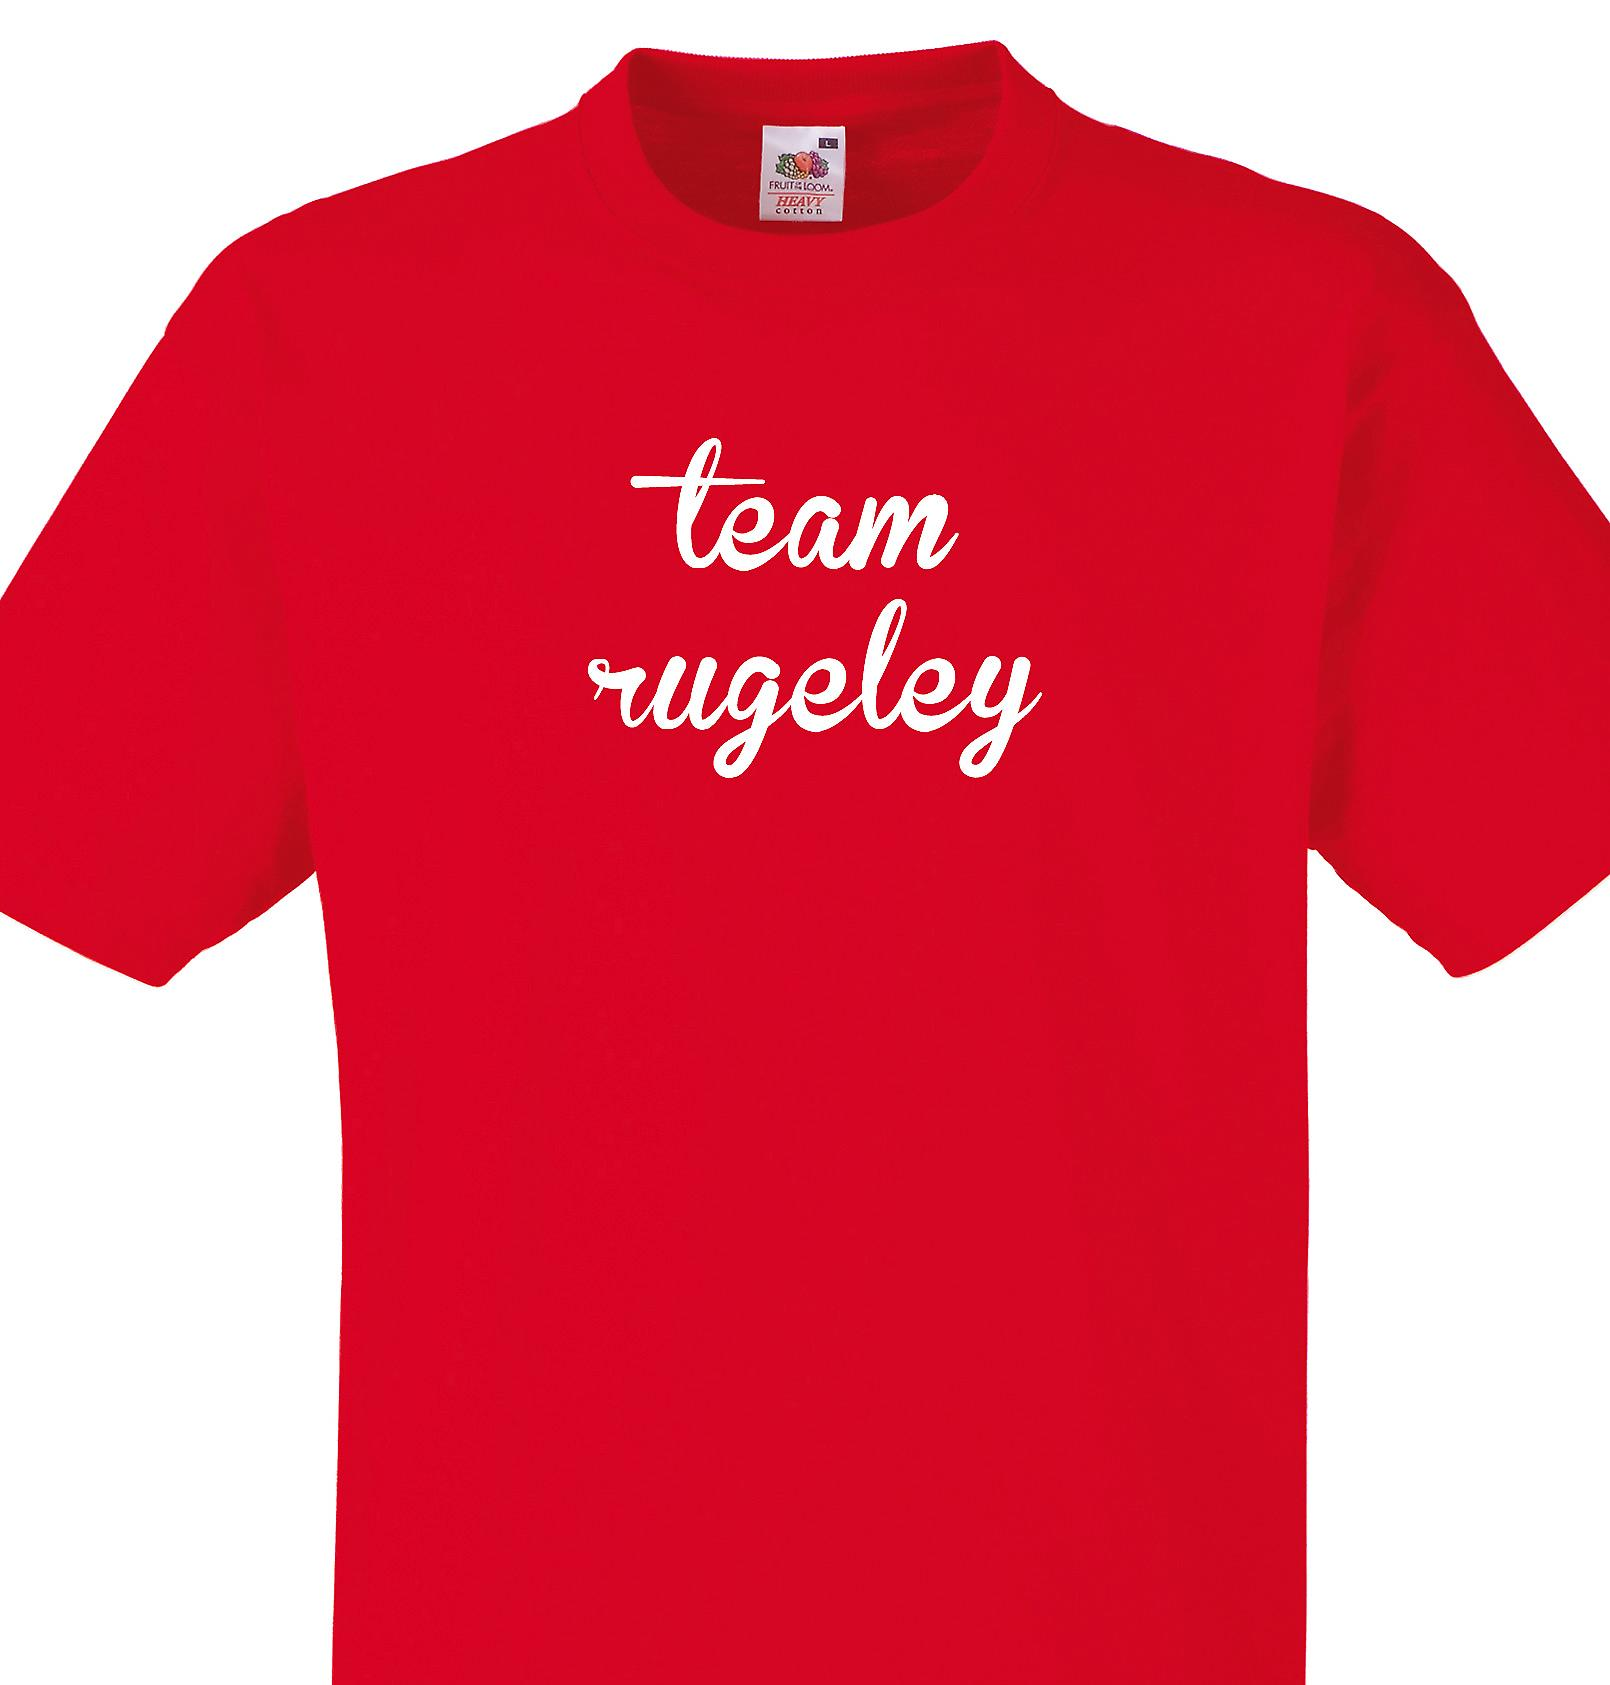 Team Rugeley Red T shirt